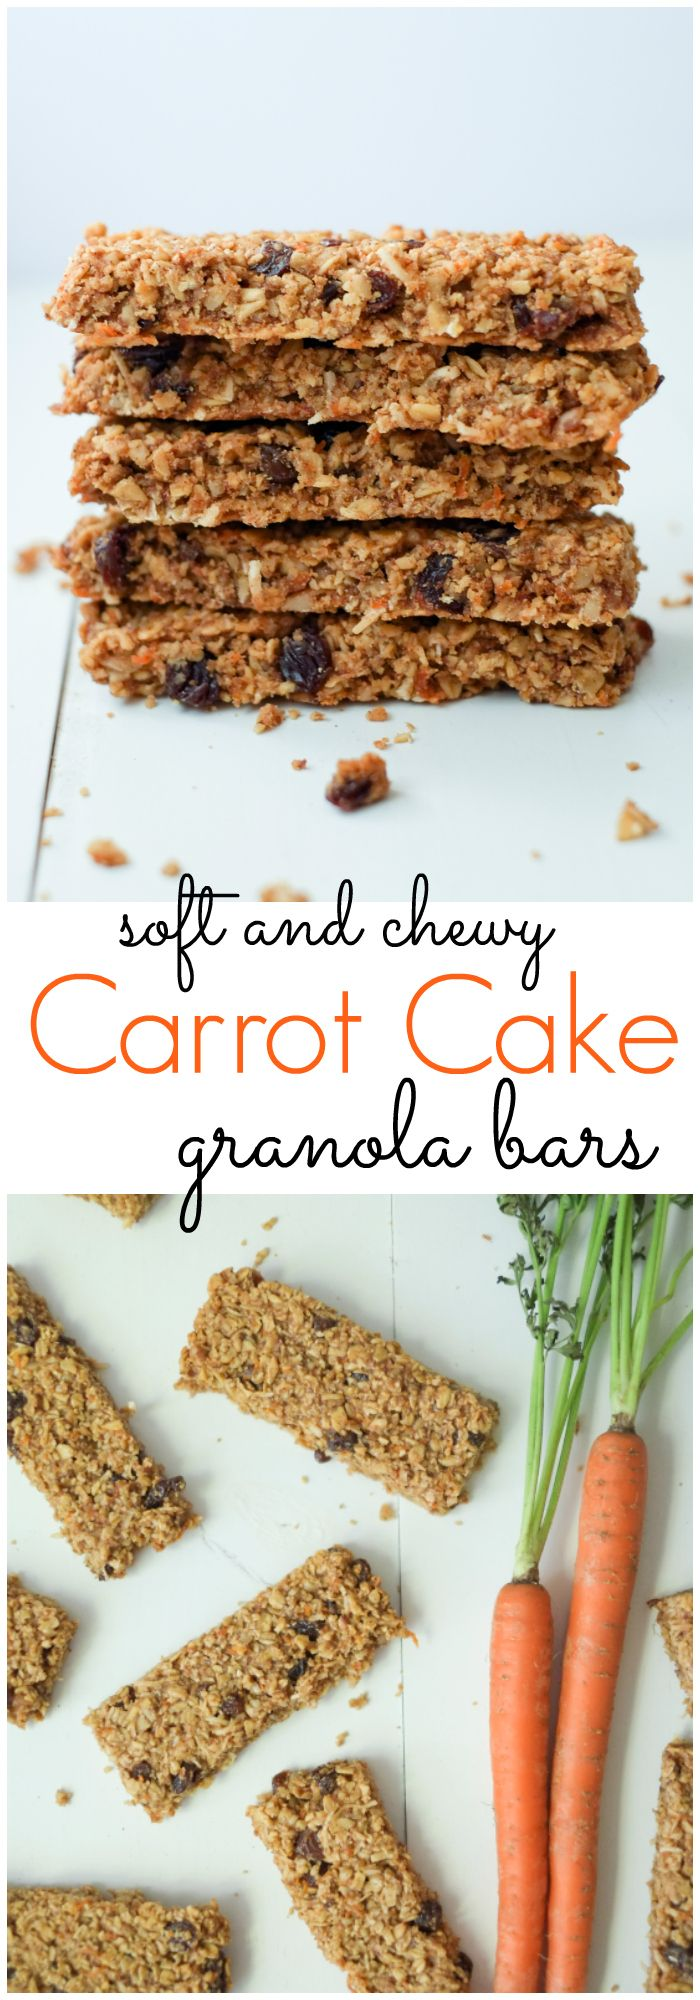 Healthy Carrot Cake Granola Bars. We love these healthy, soft carrot cake granola bars - they're tasty and include a vegetable! High in protein and fiber, this snack will keep you full! http://www.superhealthykids.com/healthy-carrot-cake-granola-bars-recipe/